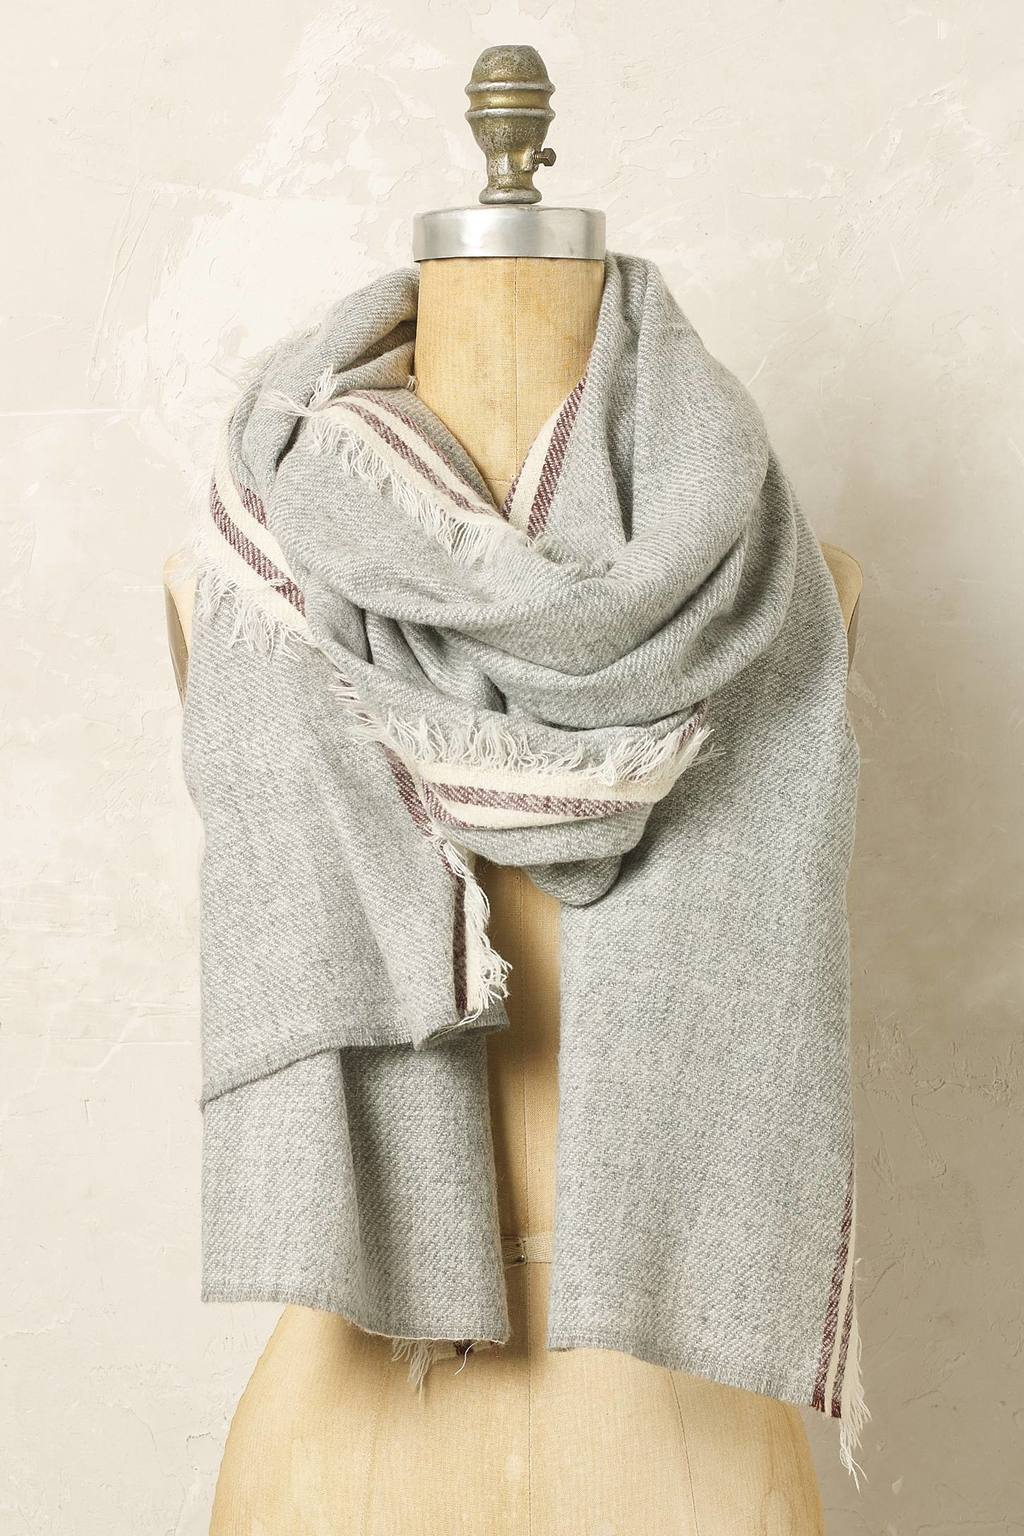 Brandon Scarf - predominant colour: light grey; occasions: casual; type of pattern: standard; style: regular; size: large; material: knits; pattern: plain; season: a/w 2016